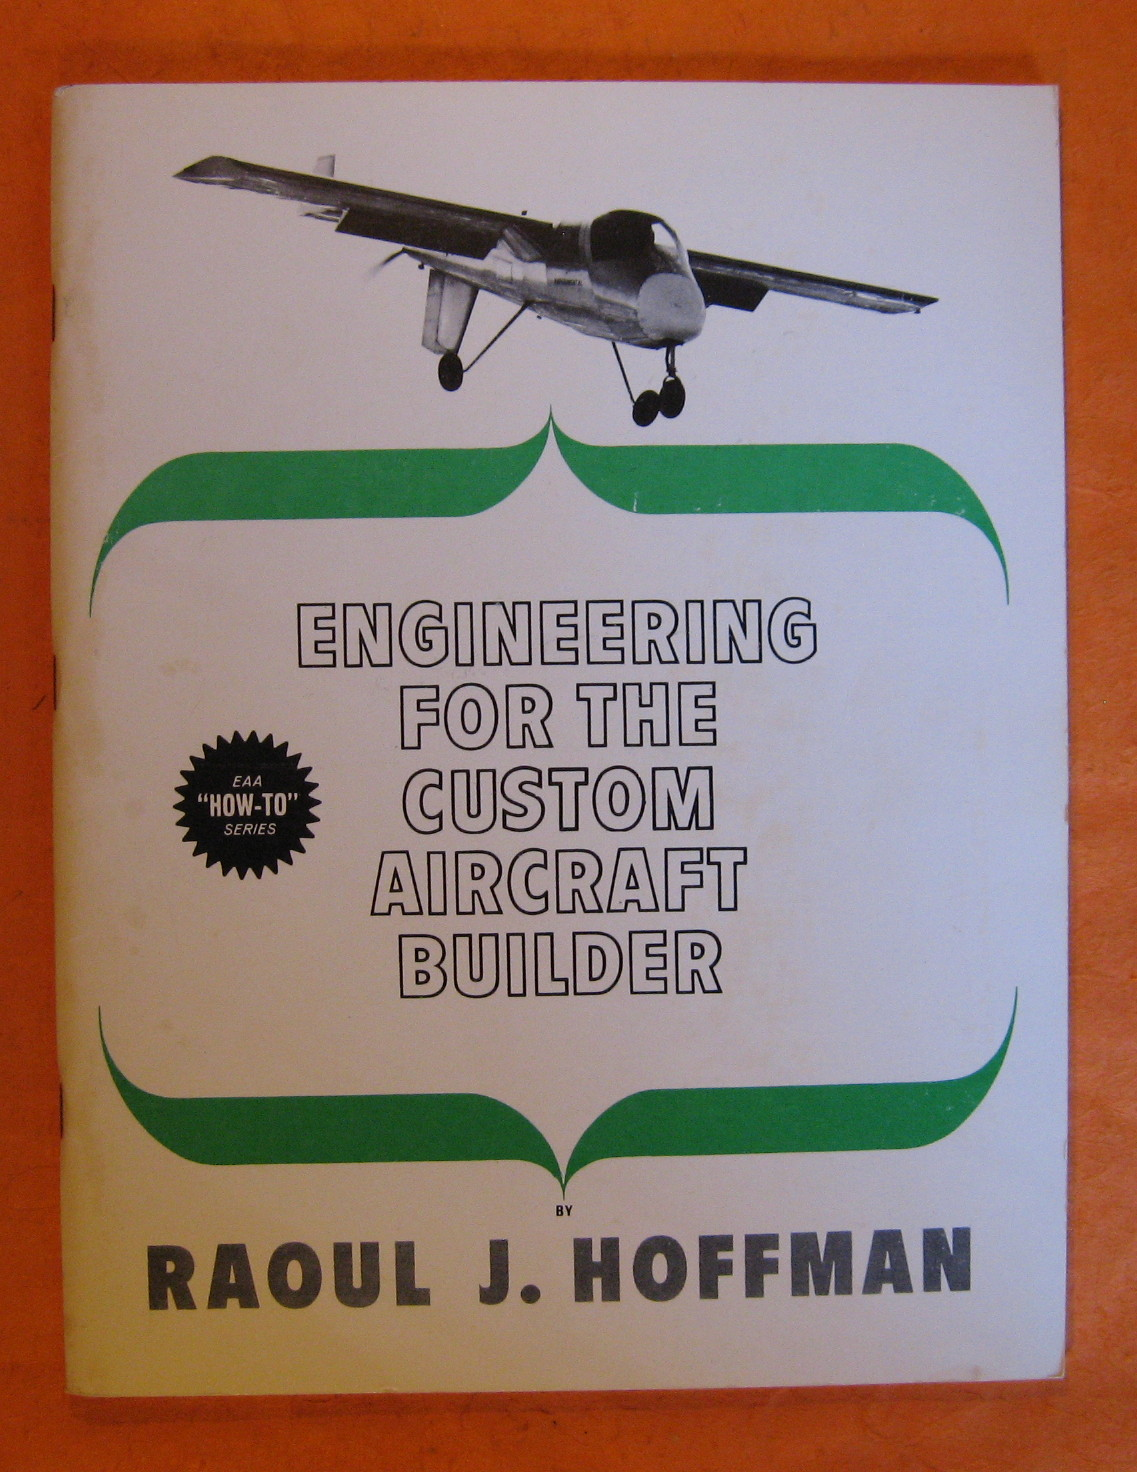 Engineering for the Custom Aircraft Builder, Raoul J. Hoffman